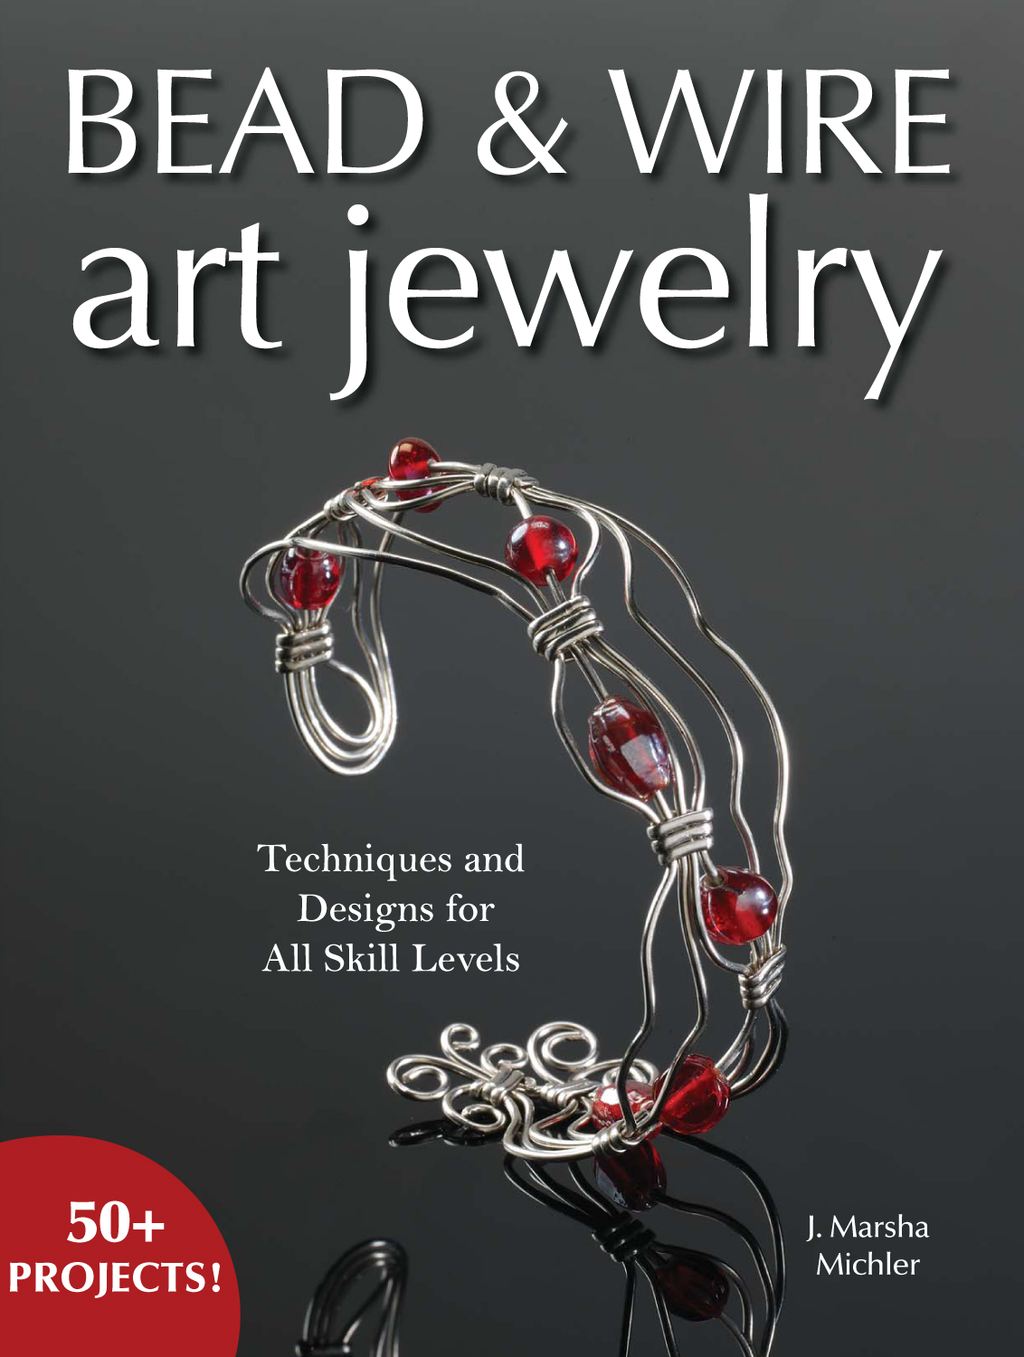 Bead & Wire Art Jewelry Techniques & Designs for all Skill Levels